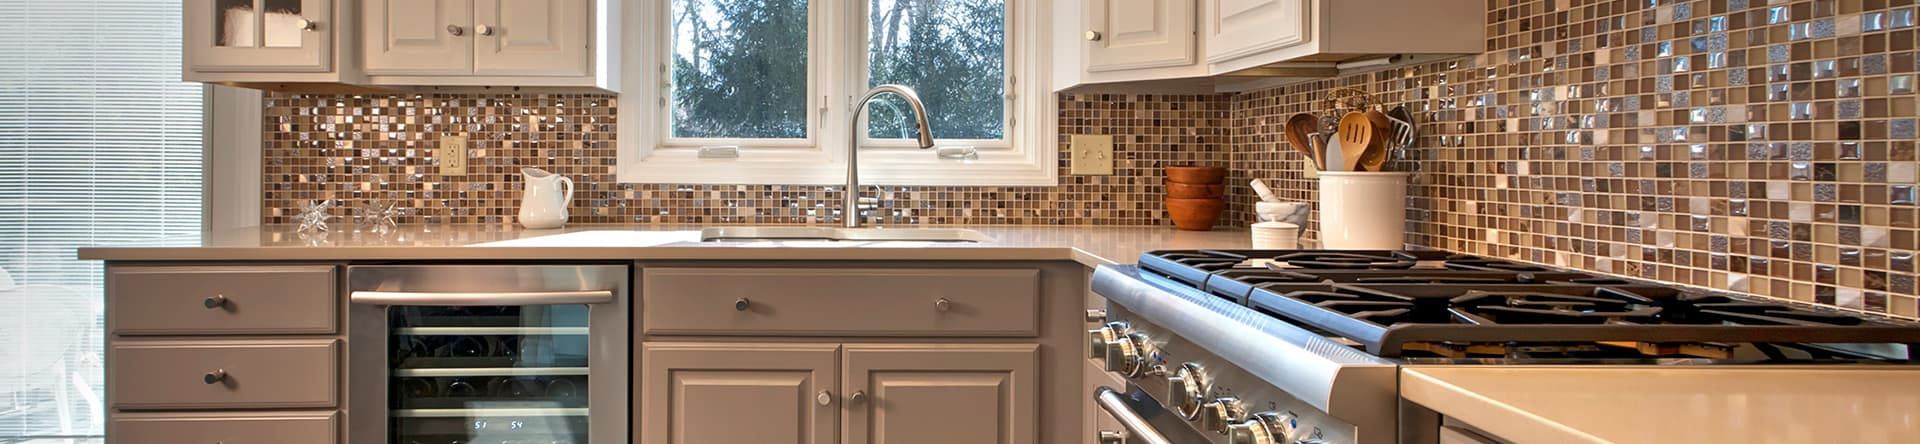 kitchen remodel st. louis | kitchen remodeling st. louis